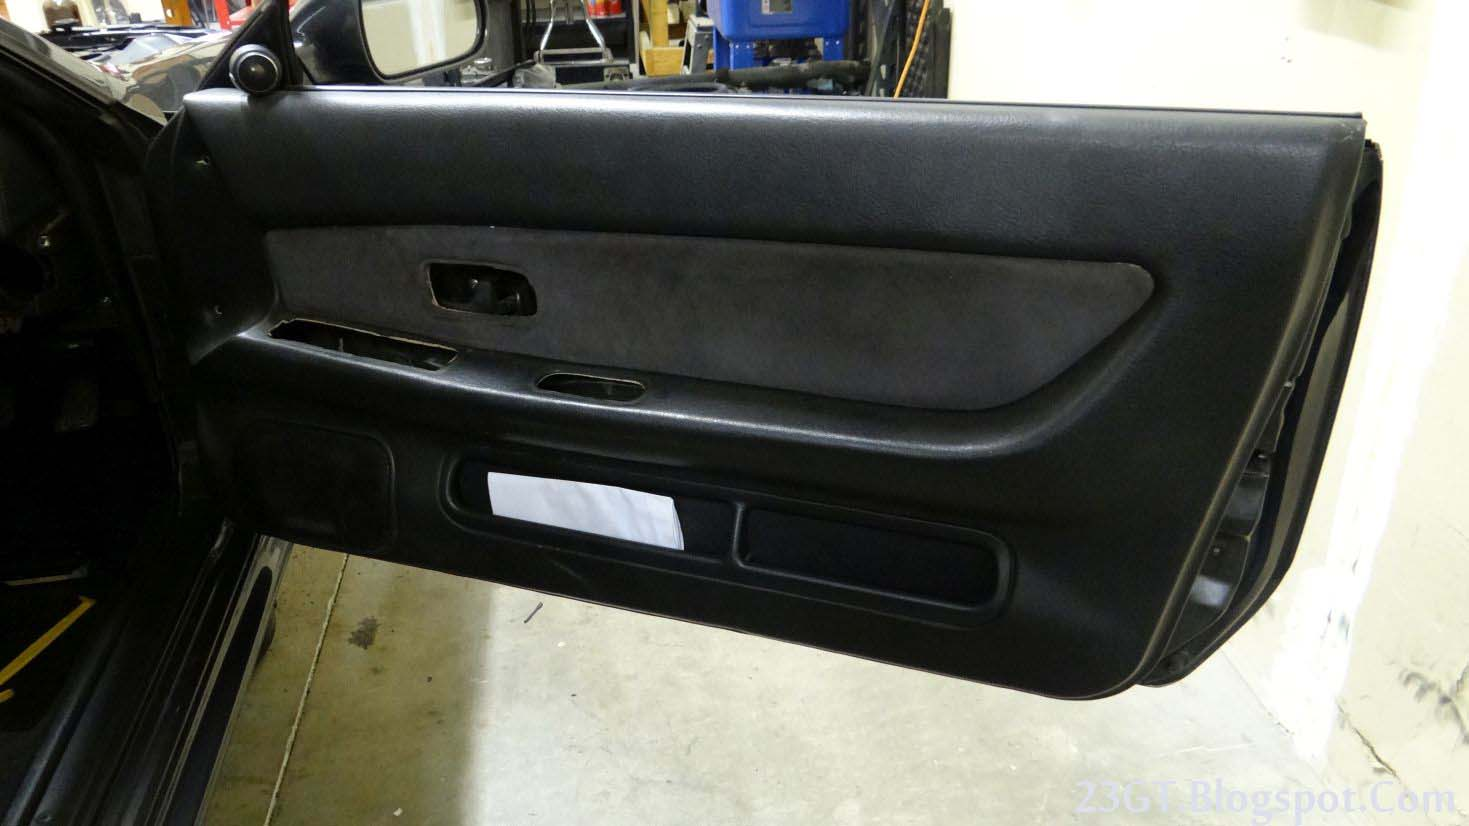 This is a door card. & DIY-ATNTFIU: Card Games - R32 Door Card Removal and Restoration ...